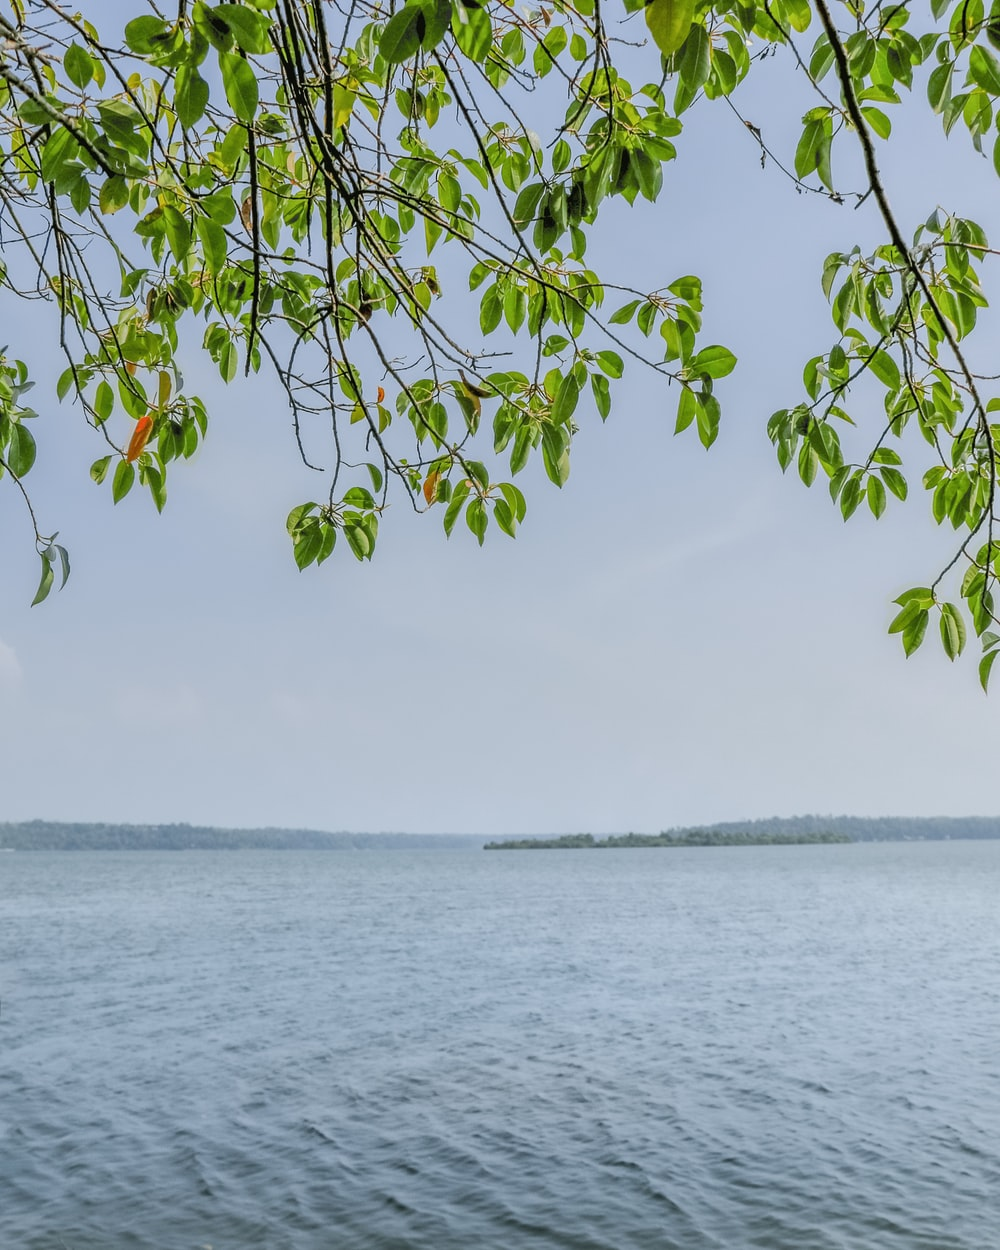 green leaves on body of water during daytime